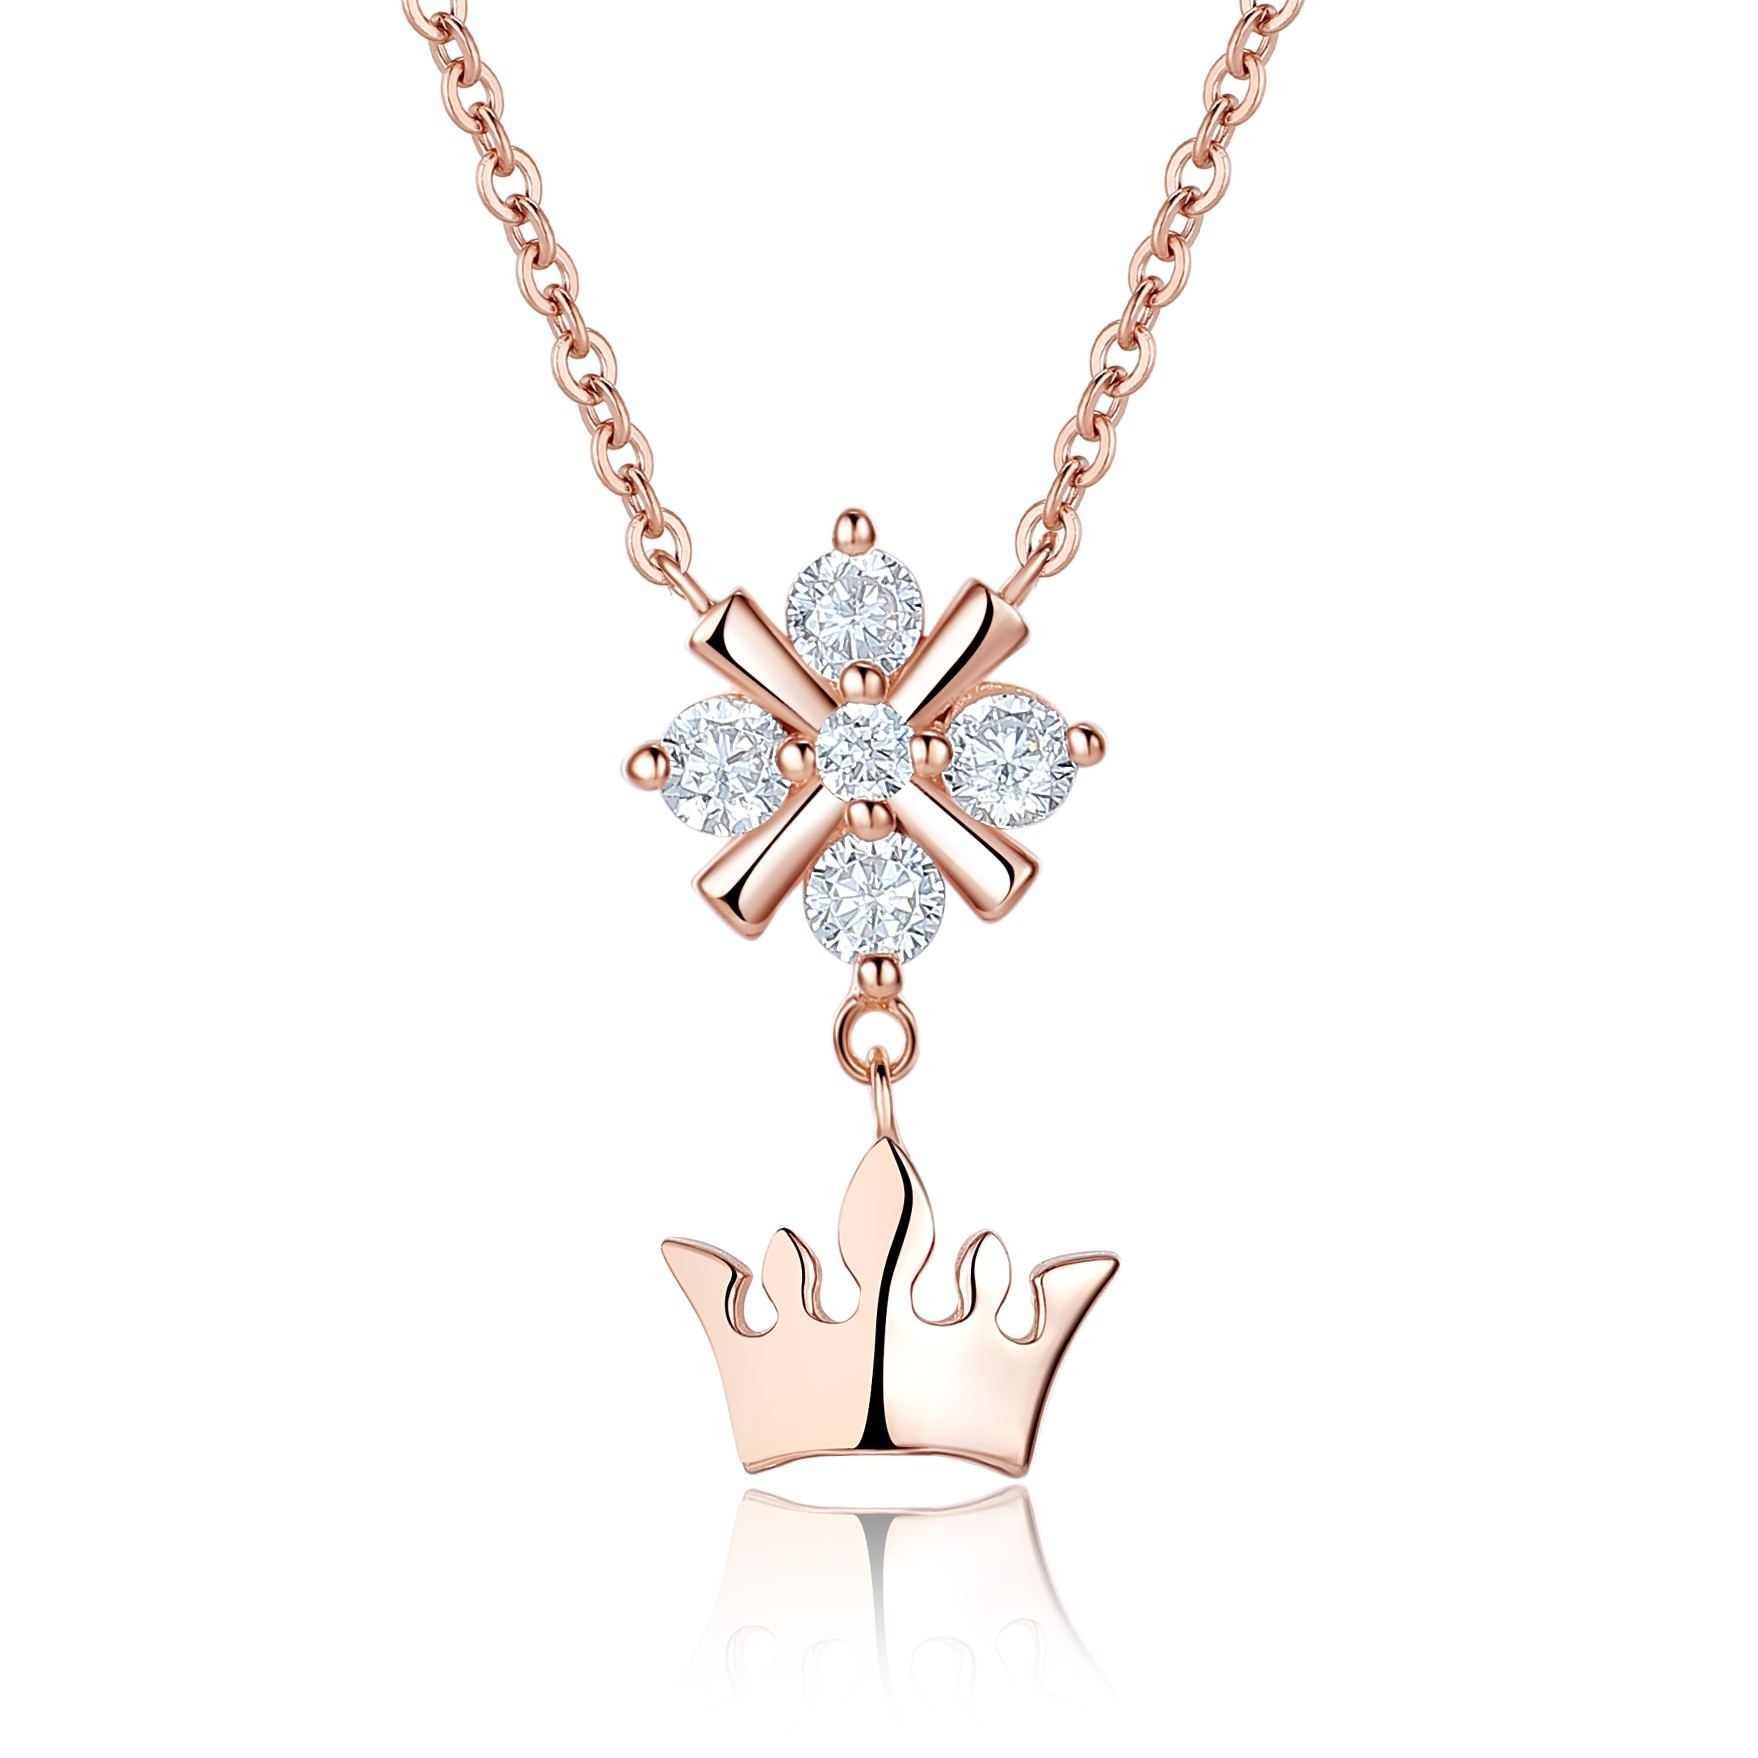 products dancing heart sterling for silver new cz kigmay crown buckingham pendant jewelry necklace york